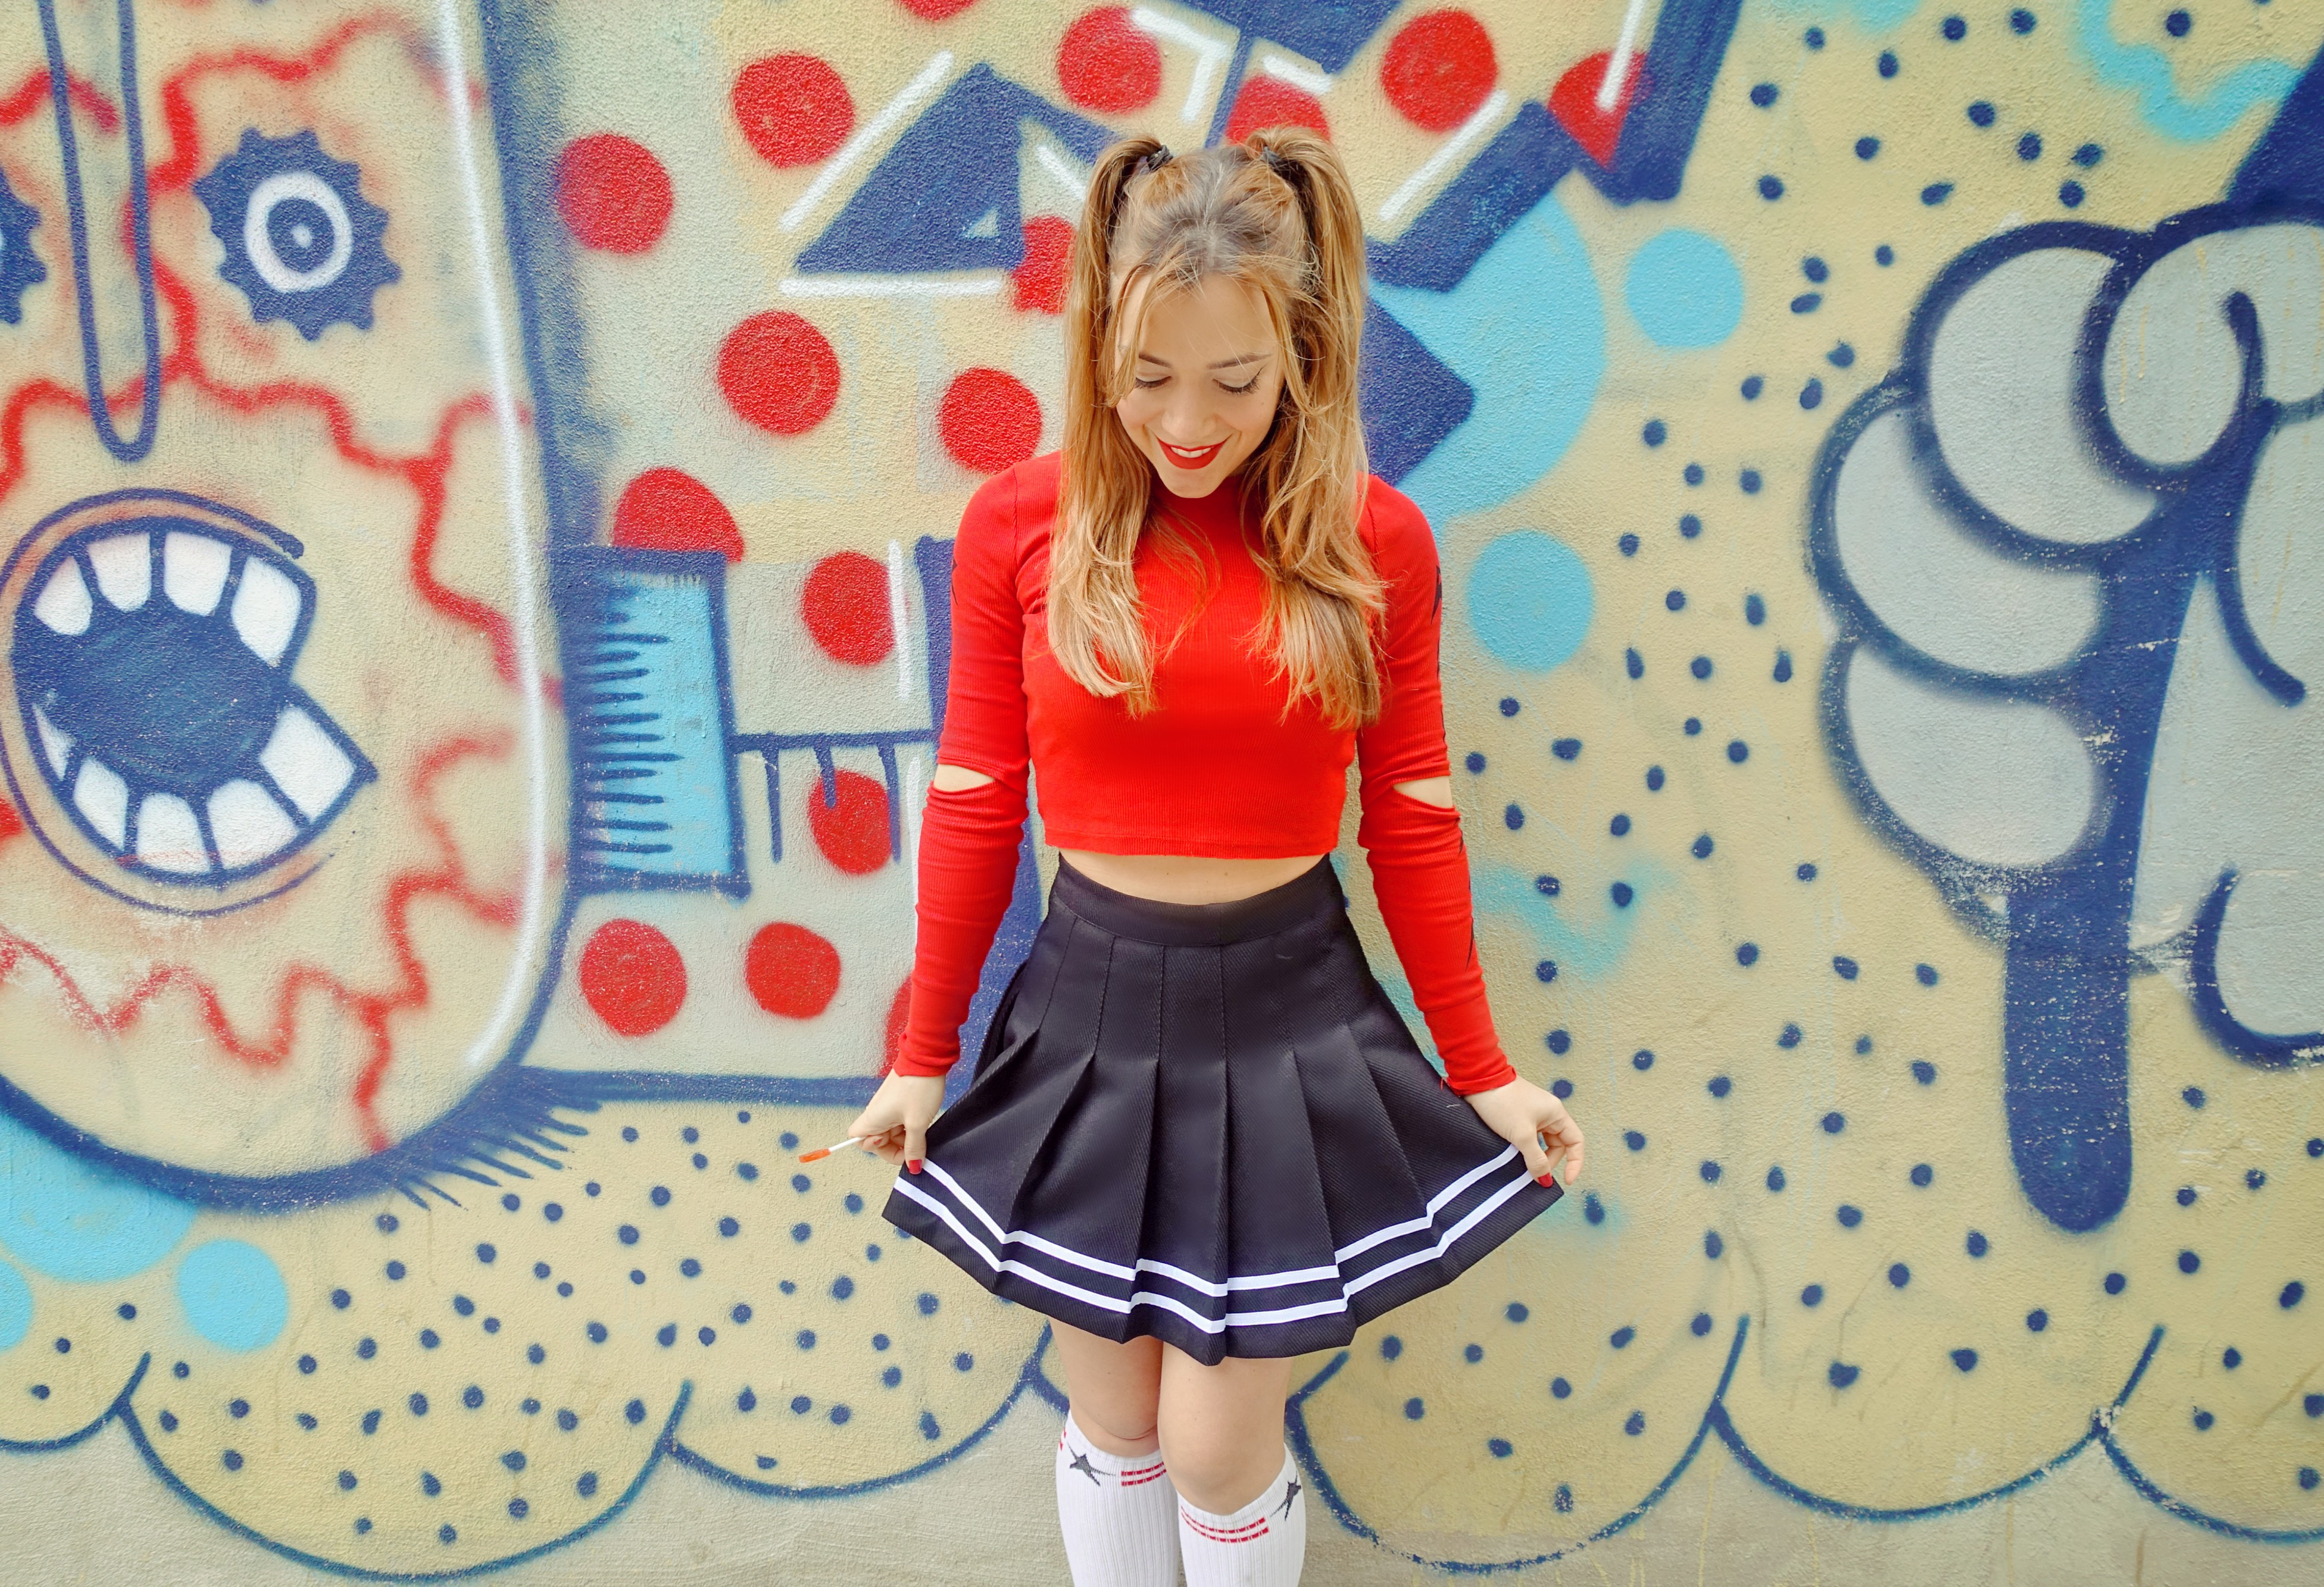 Look-rojo-blog-de-moda-ChicAdicta-influencer-Chic-Adicta-PiensaenChic-cheerleader-look-peinados-90s-Piensa-en-Chic